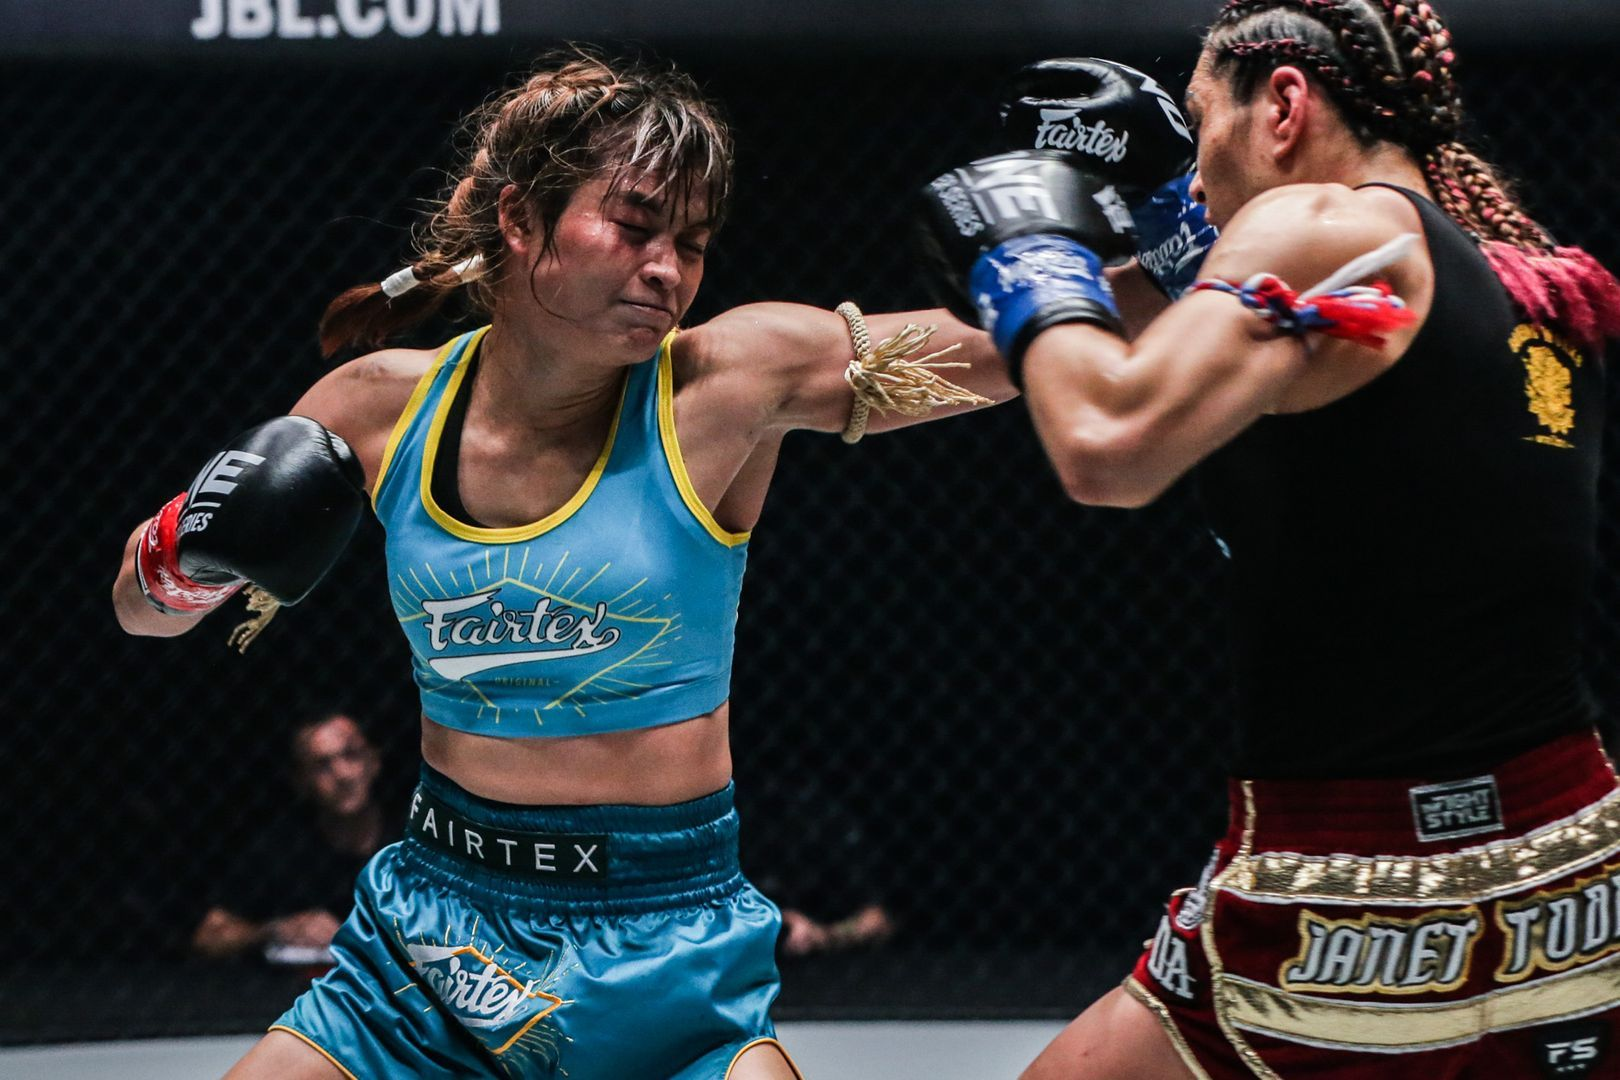 Stamp Fairtex Hits Janet Todd With An Overhand Left